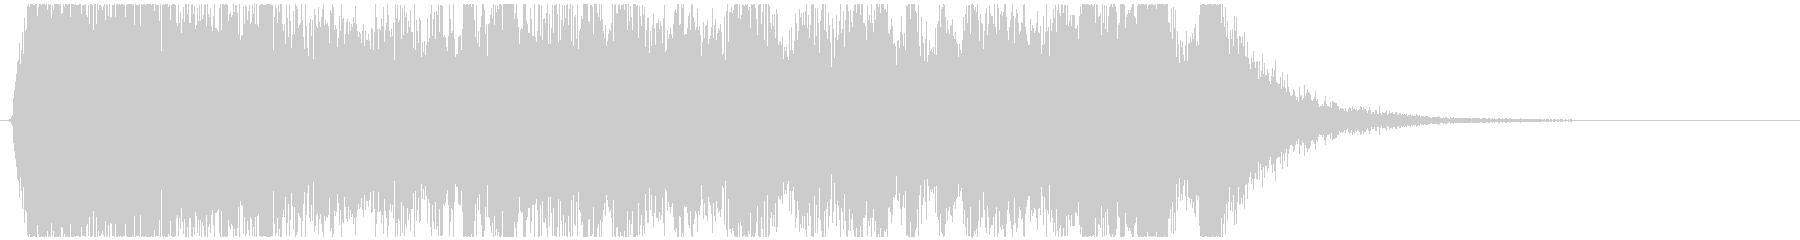 """Impact logo from Beethoven's """"Ninth Symphony""""'s unreproduced waveform"""